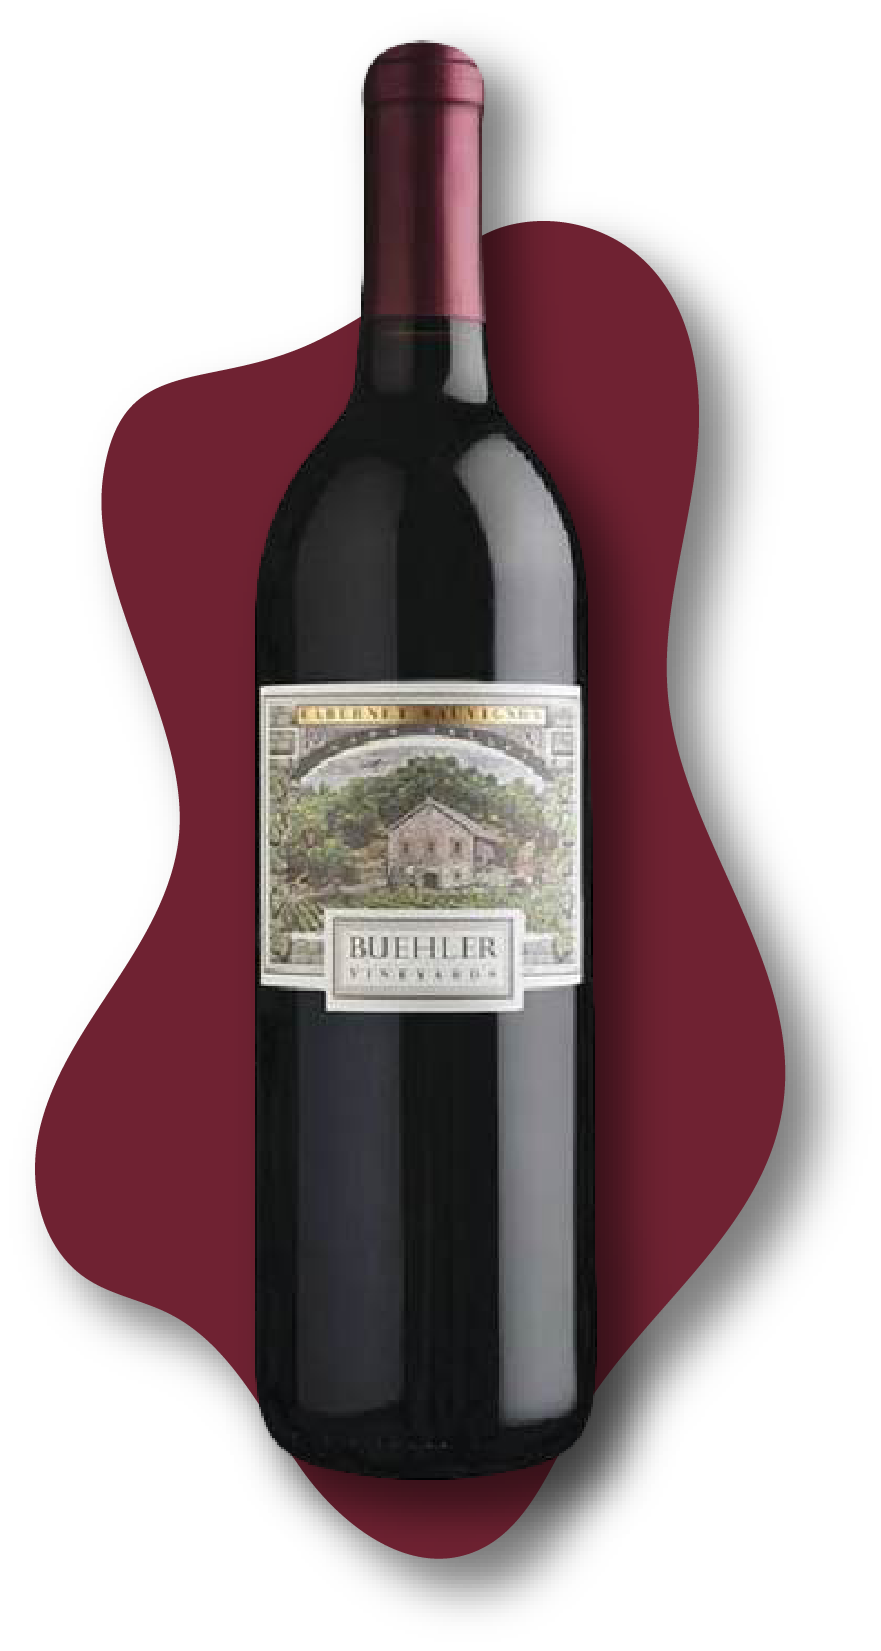 Buehler, Cabernet Sauvignon, Napa Valley, California, 2017  Online Wine Class Image at learnaboutwine.com